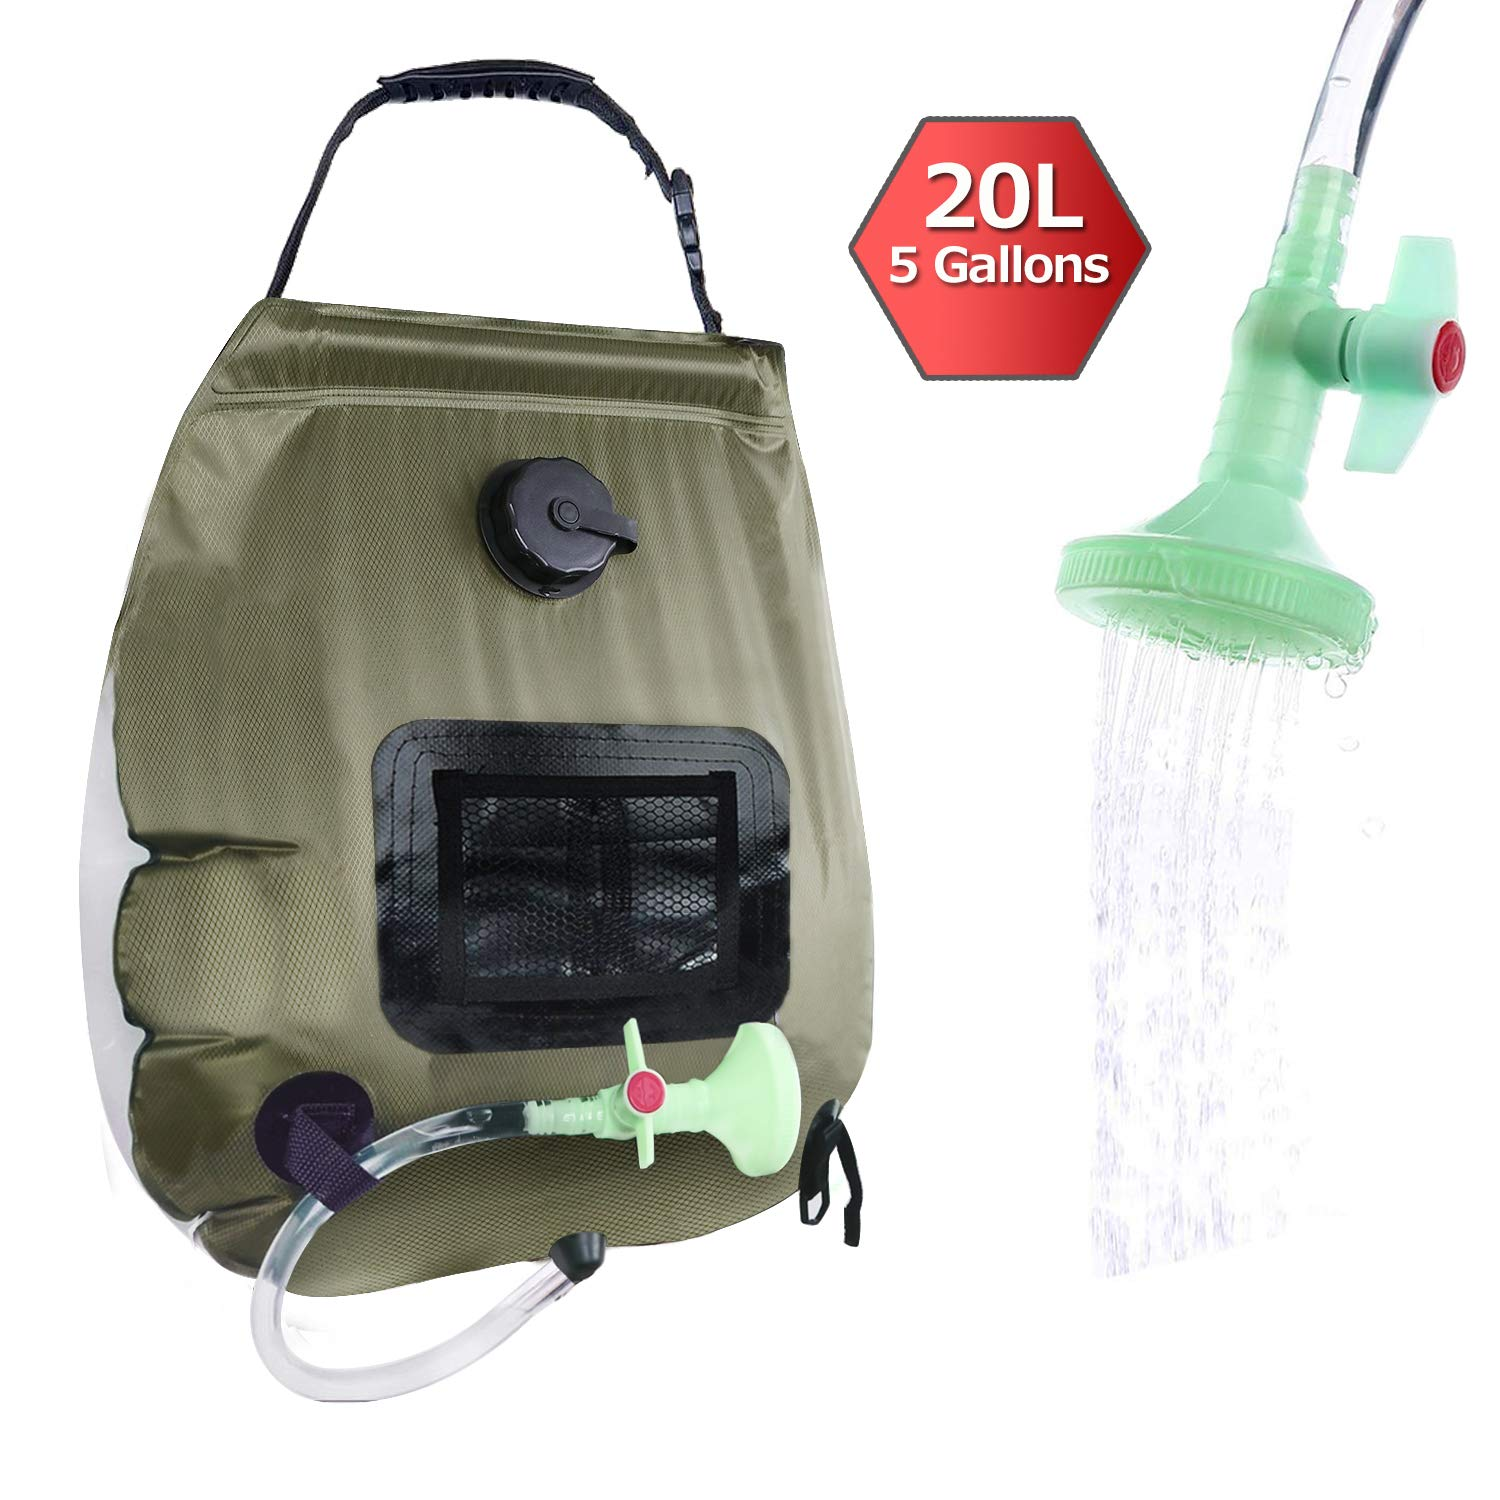 Prepare Camp Solar Shower Bag with Pressure Foot Pump /& Shower Nozzle Dr